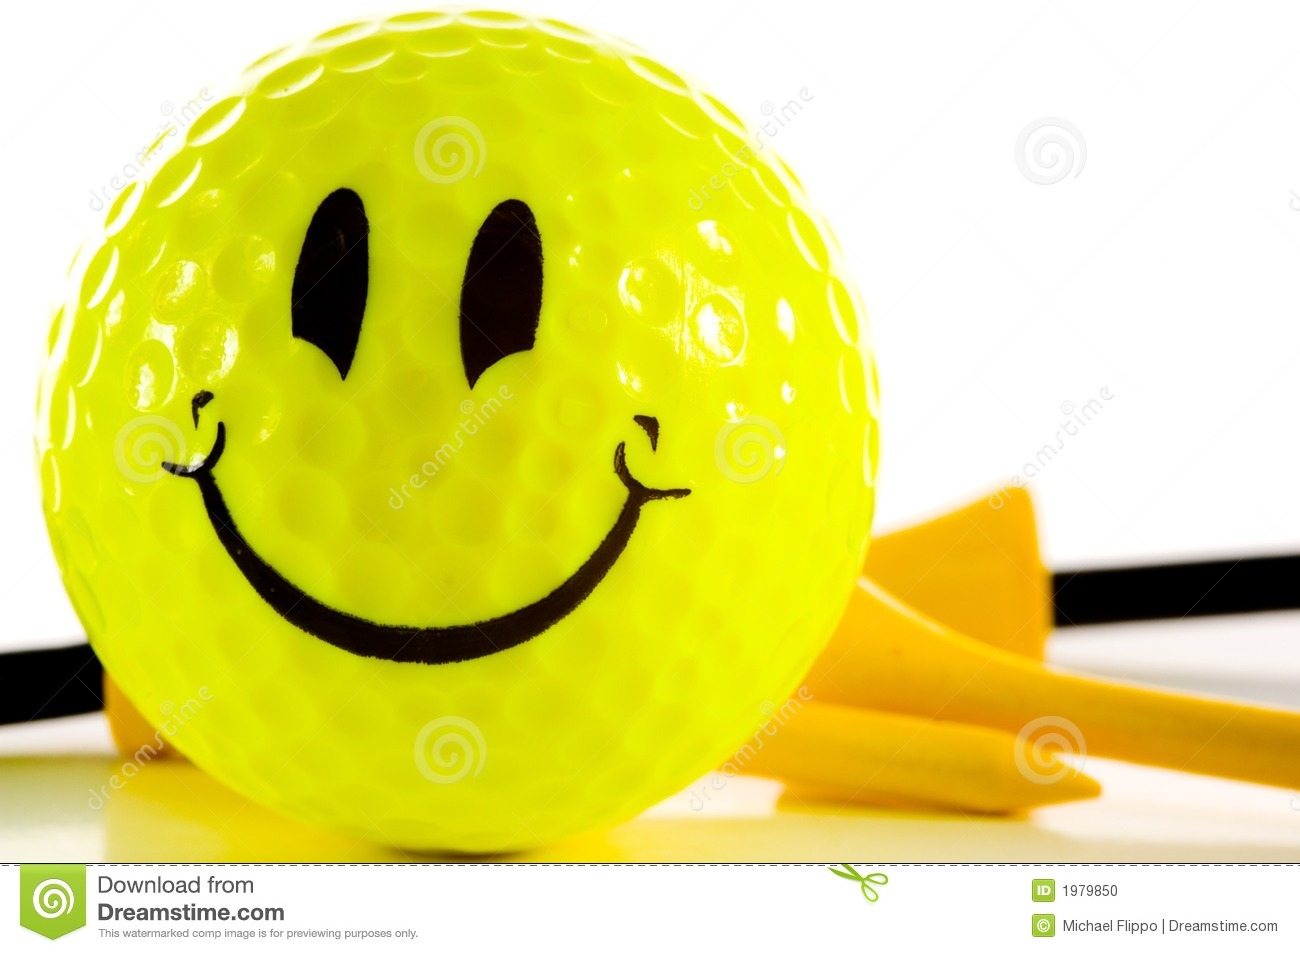 Yellow smiley face golf ball on white background with yellow and black ...